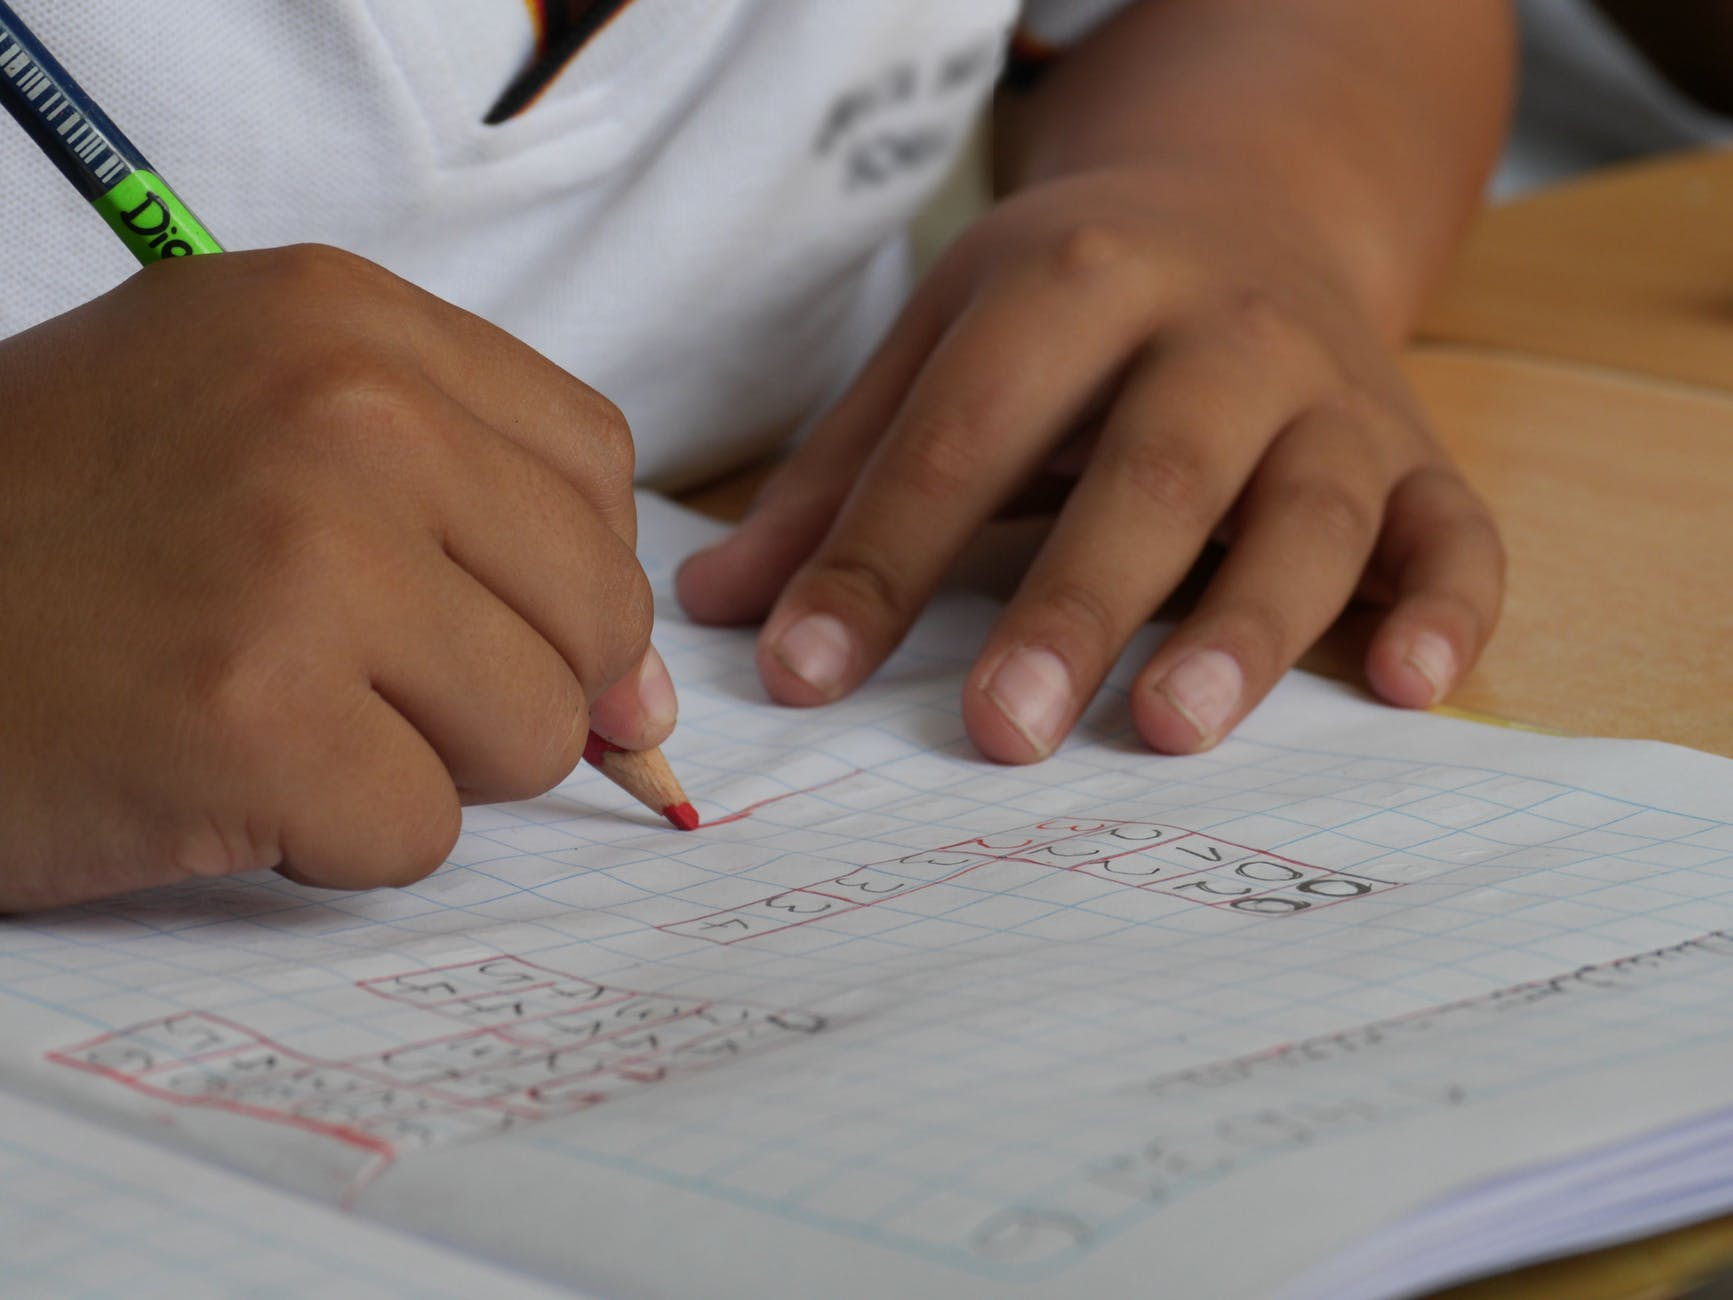 what is math anxiety? How to overcome it